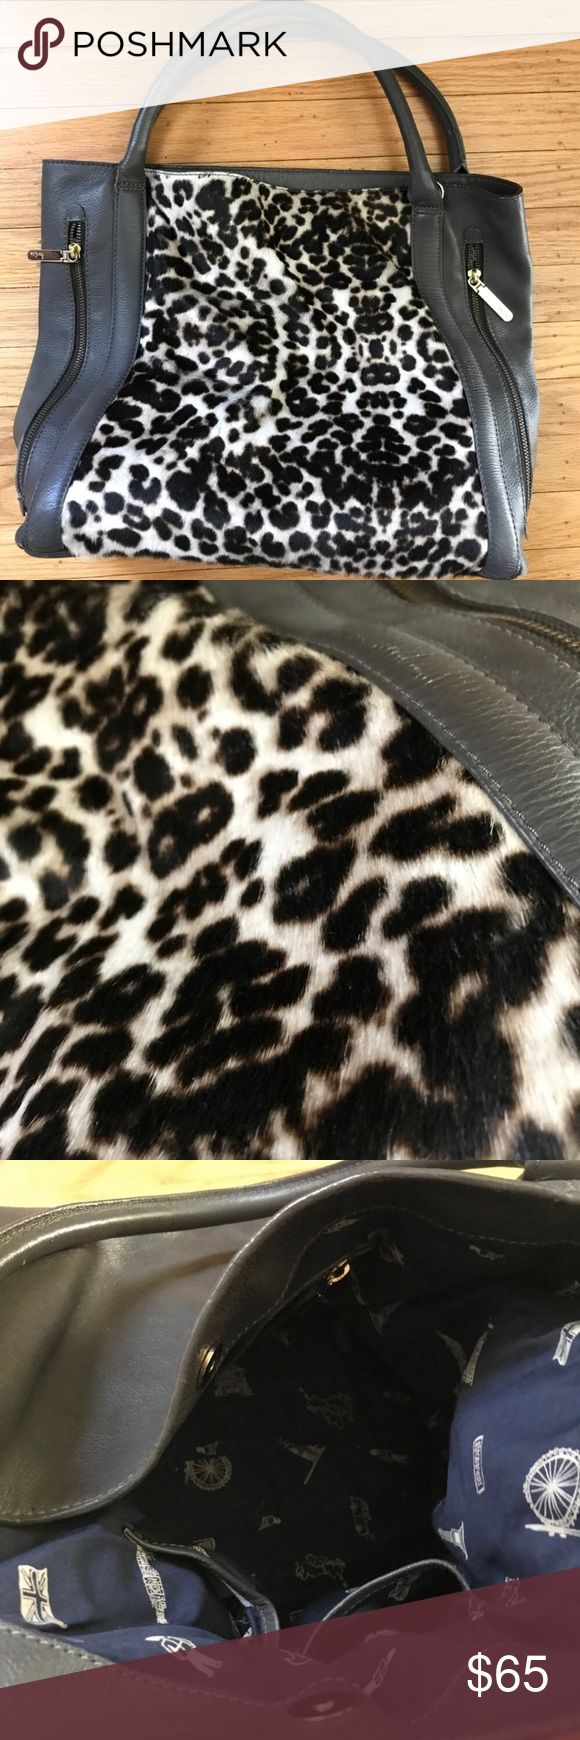 Boden Leopard Purse Used Boden Leather Leopard Print Grey  Purse Boden Bags Totes